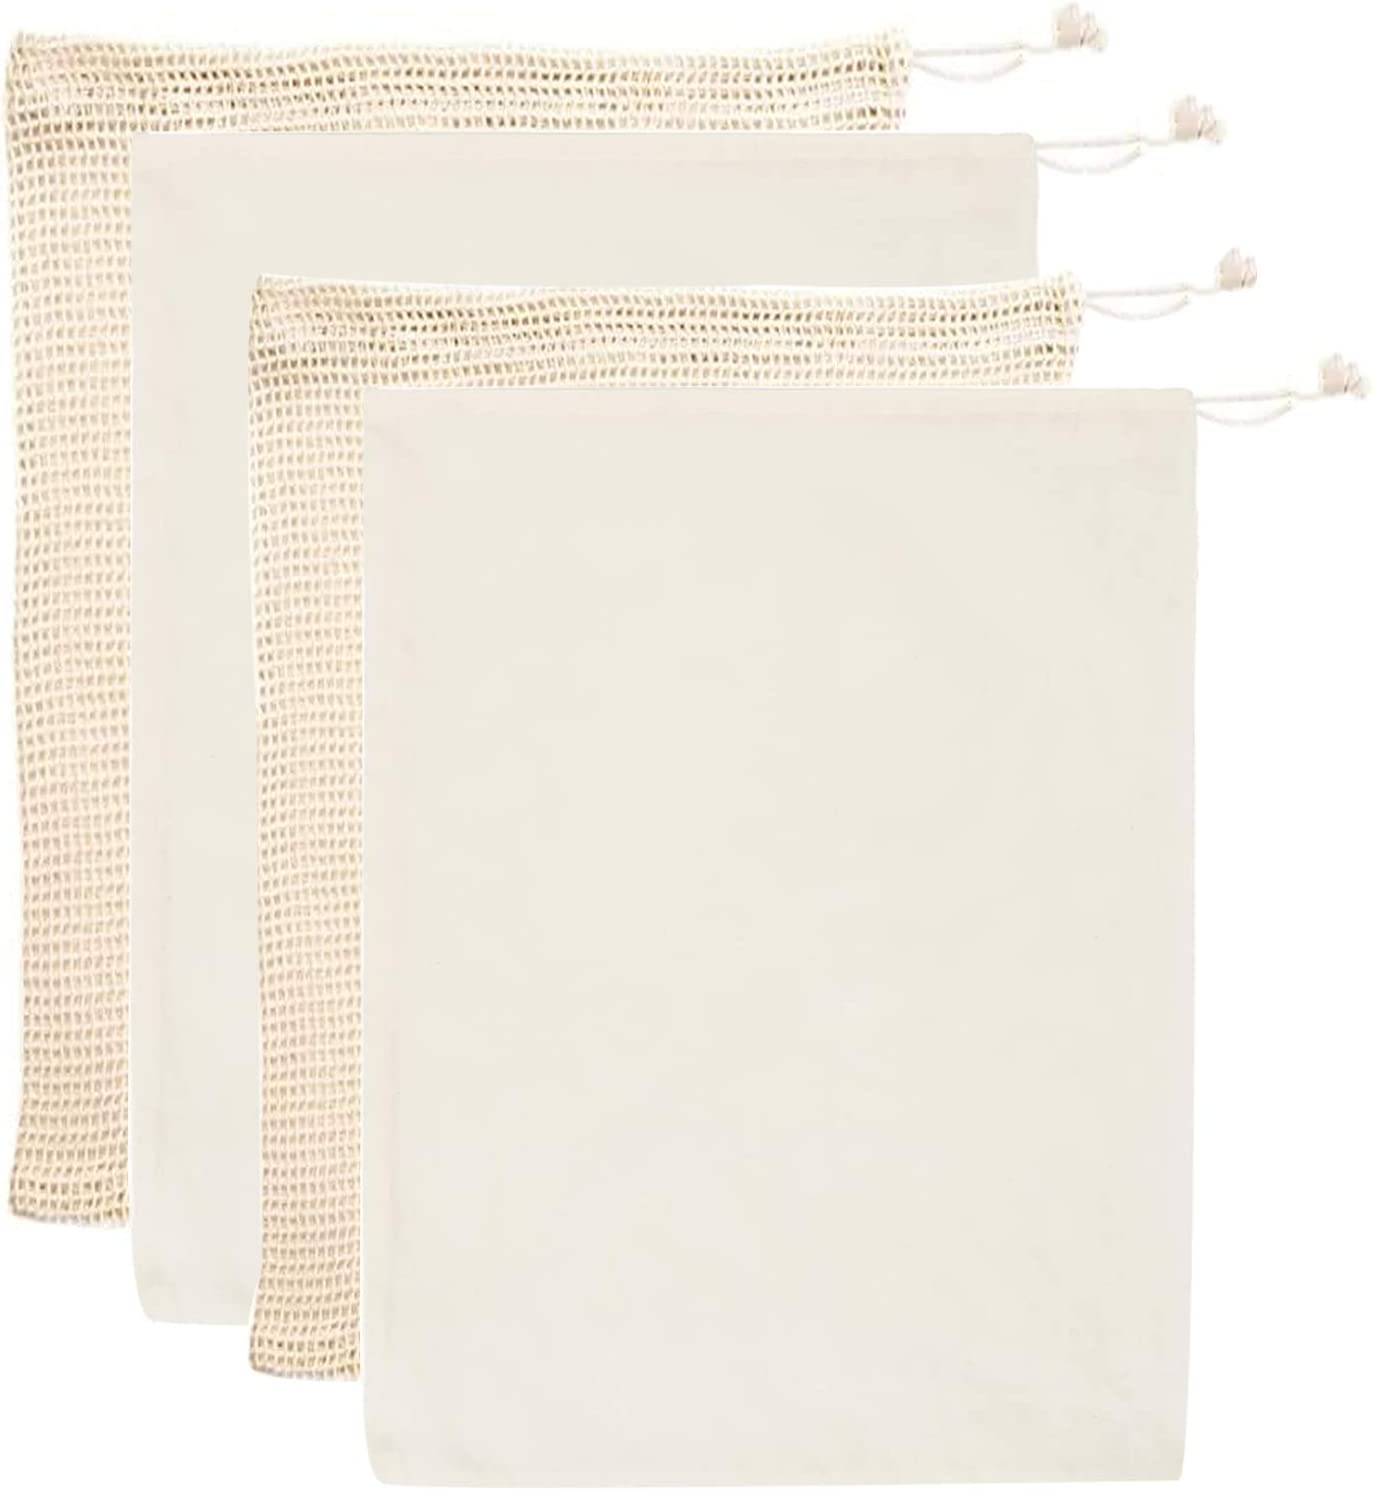 4 Pack Mesh Bags Cotton Reusable Produce Bags   Eco Friendly Double Sewing Grocery Storage Bags with Tags Drawstring Lock, for Veggies Fruits Bulk Food Shopping Biodegradable Washable Natural